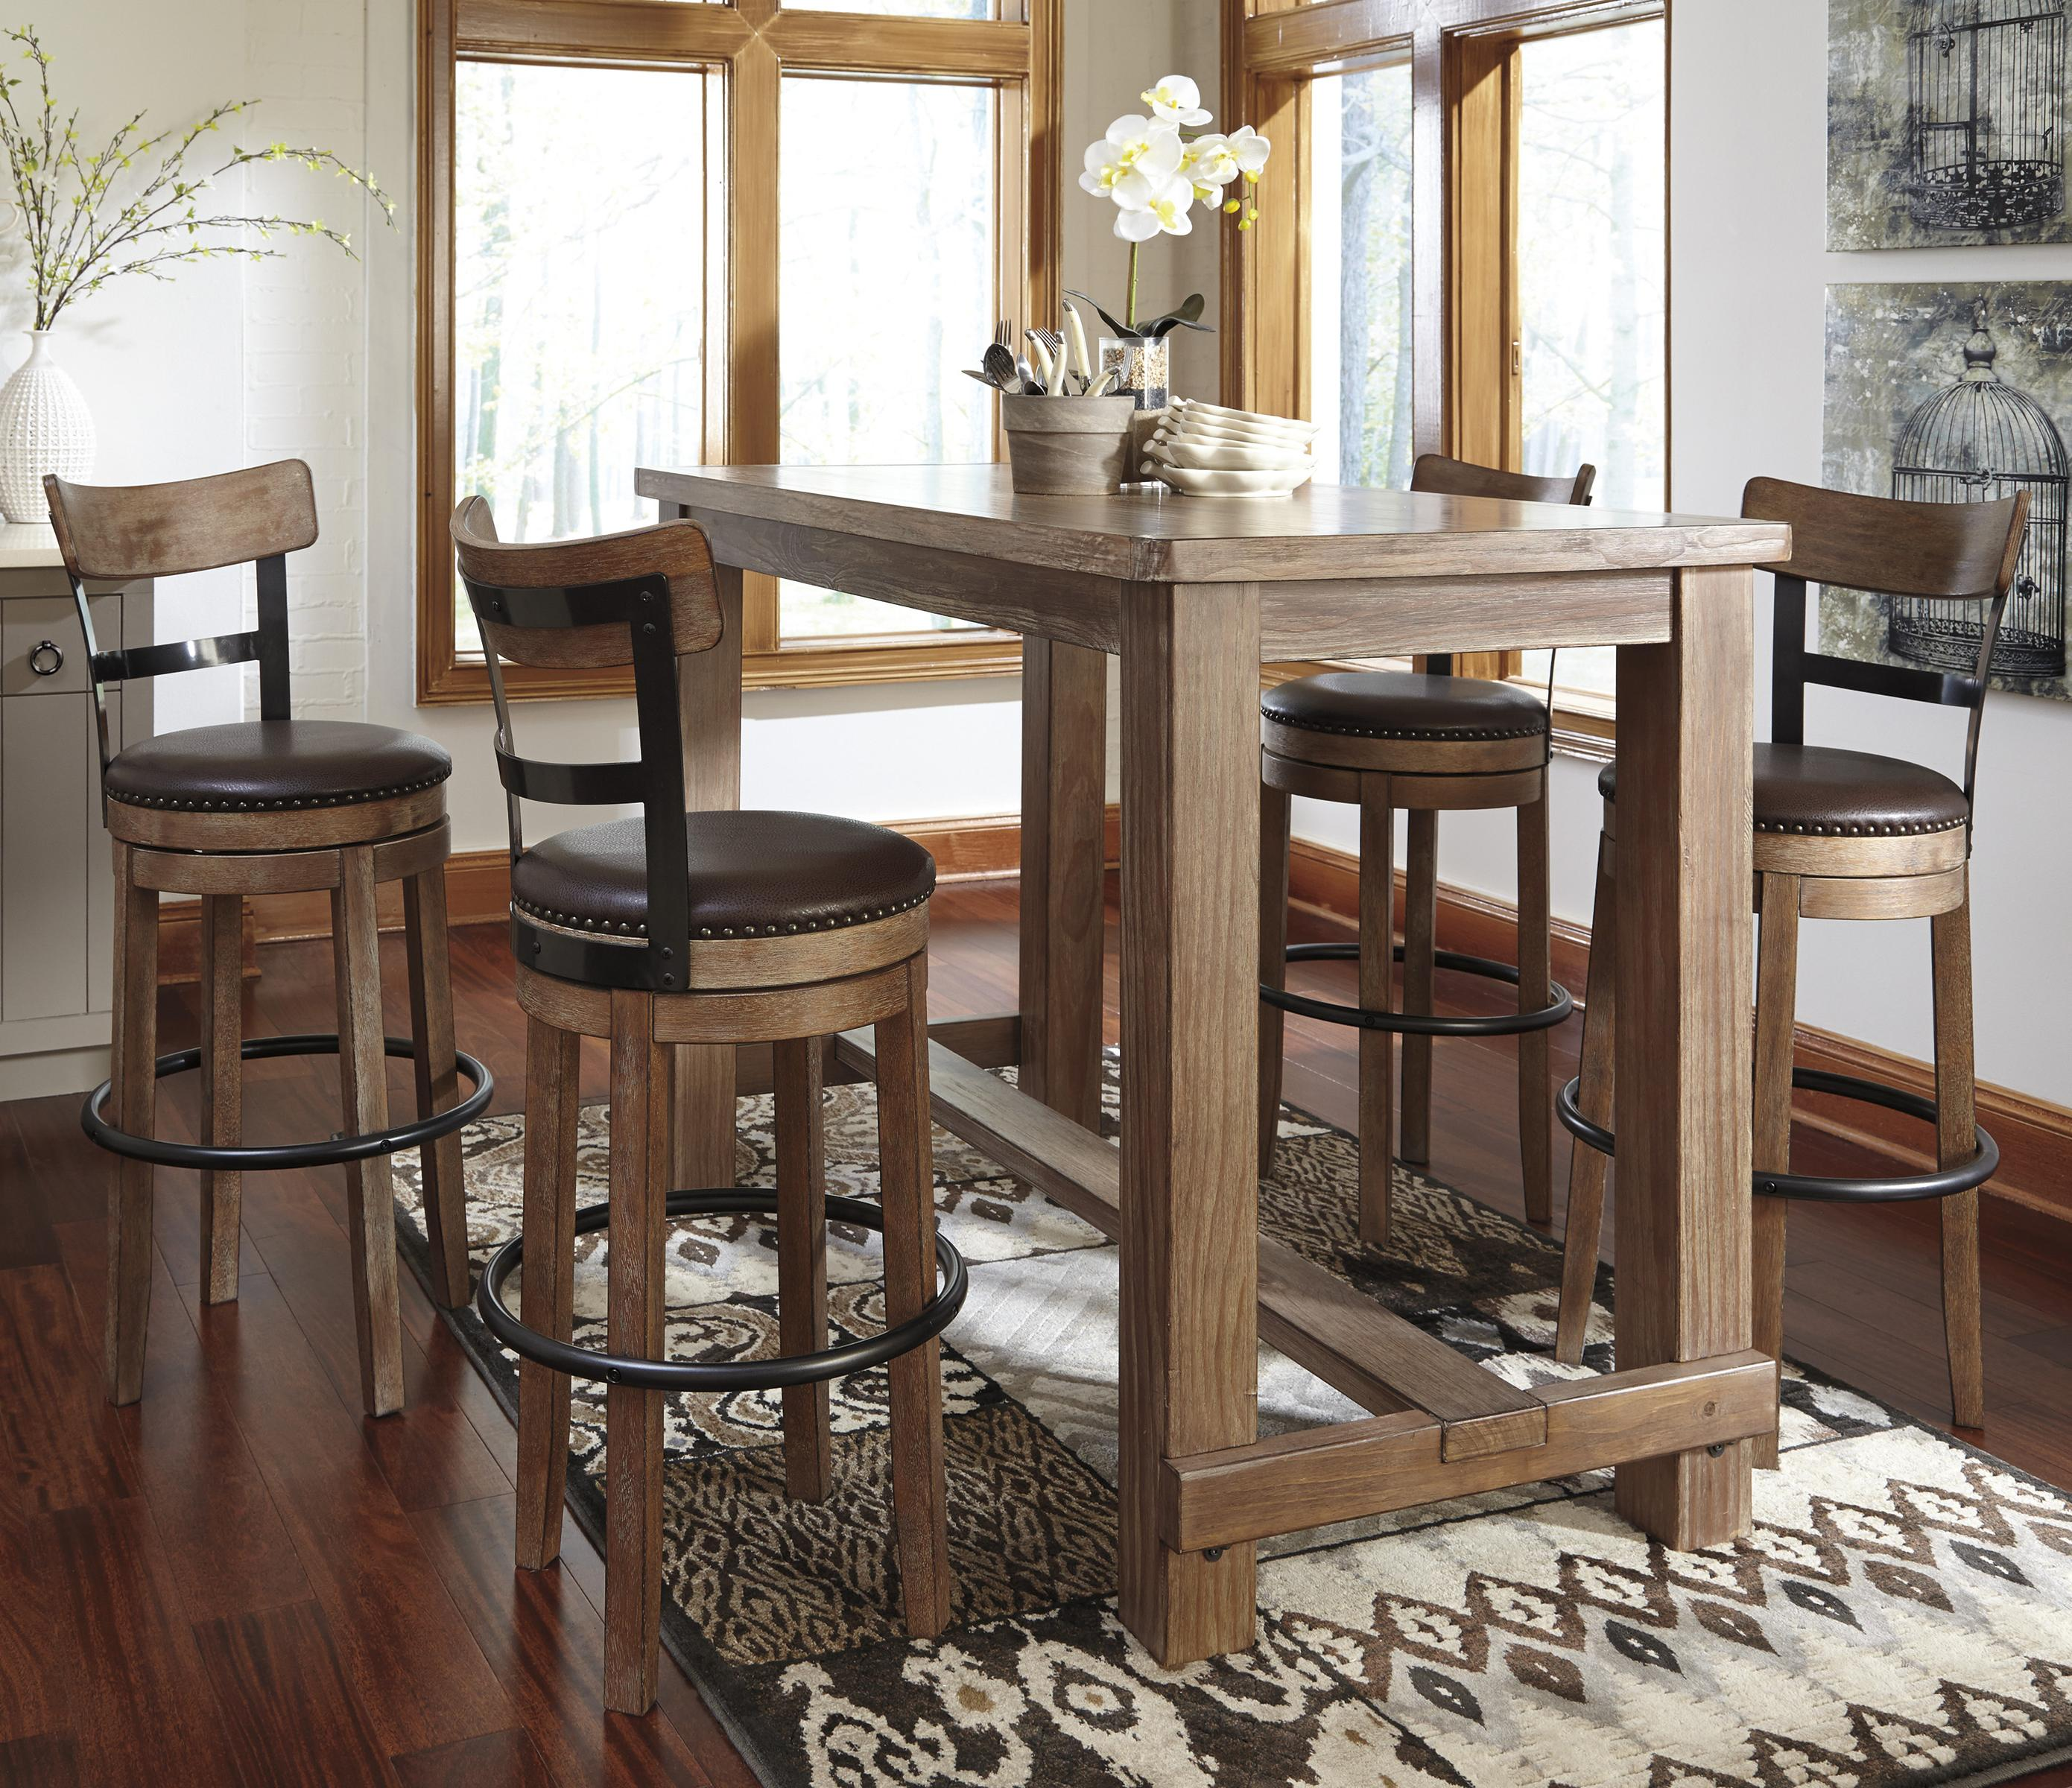 5 Piece Bar Table Set with Upholstered Swivel Stools with  : products2Fsignaturedesignbyashley2Fcolor2Fpinnadel20 201195589344d542 122B4x130 b0 from www.wolffurniture.com size 2781 x 2400 jpeg 889kB